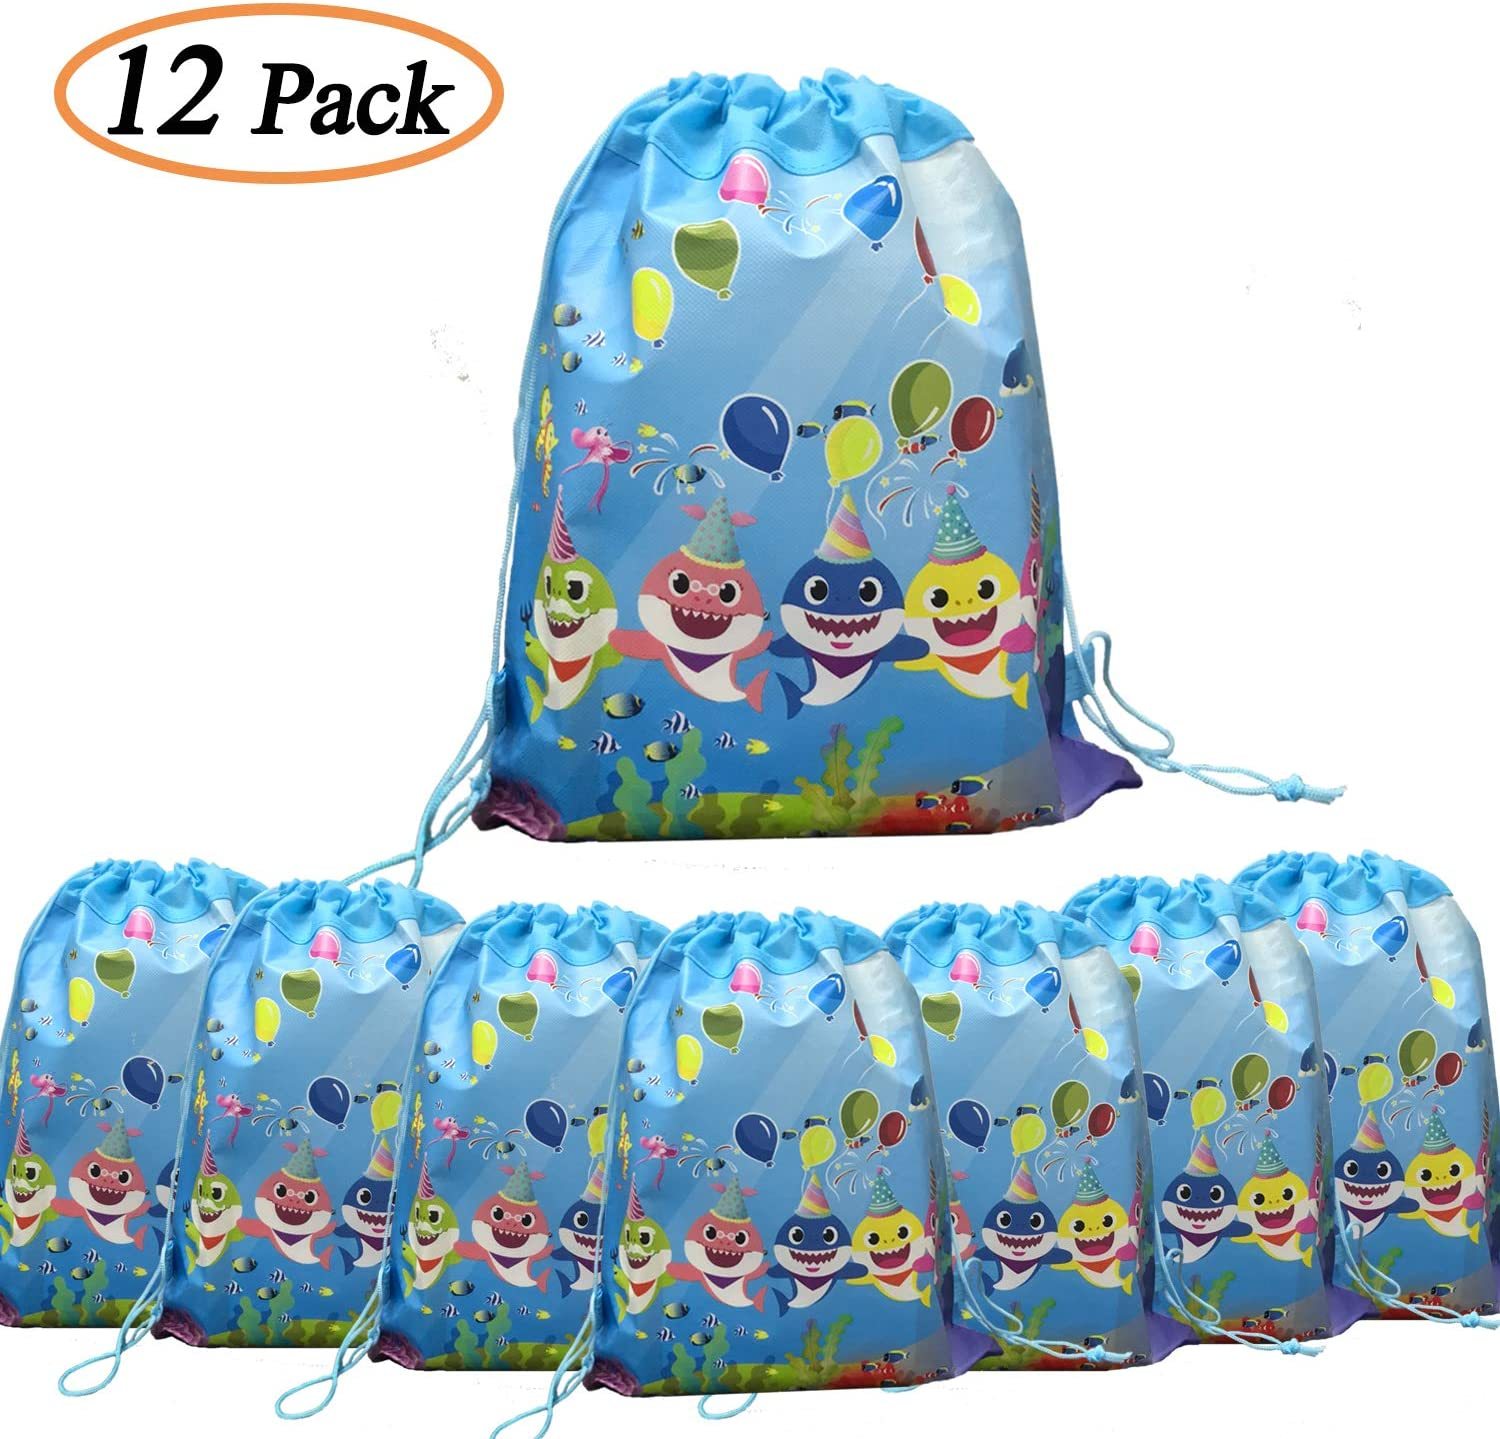 "12 Pack Cute Shark Drawstring Bags, 14"" * 11"" Shark Gift Bags Storage Backpack Birthday Goodie Bags Party Favors for Boys and Girls Birthday Party Supplies"